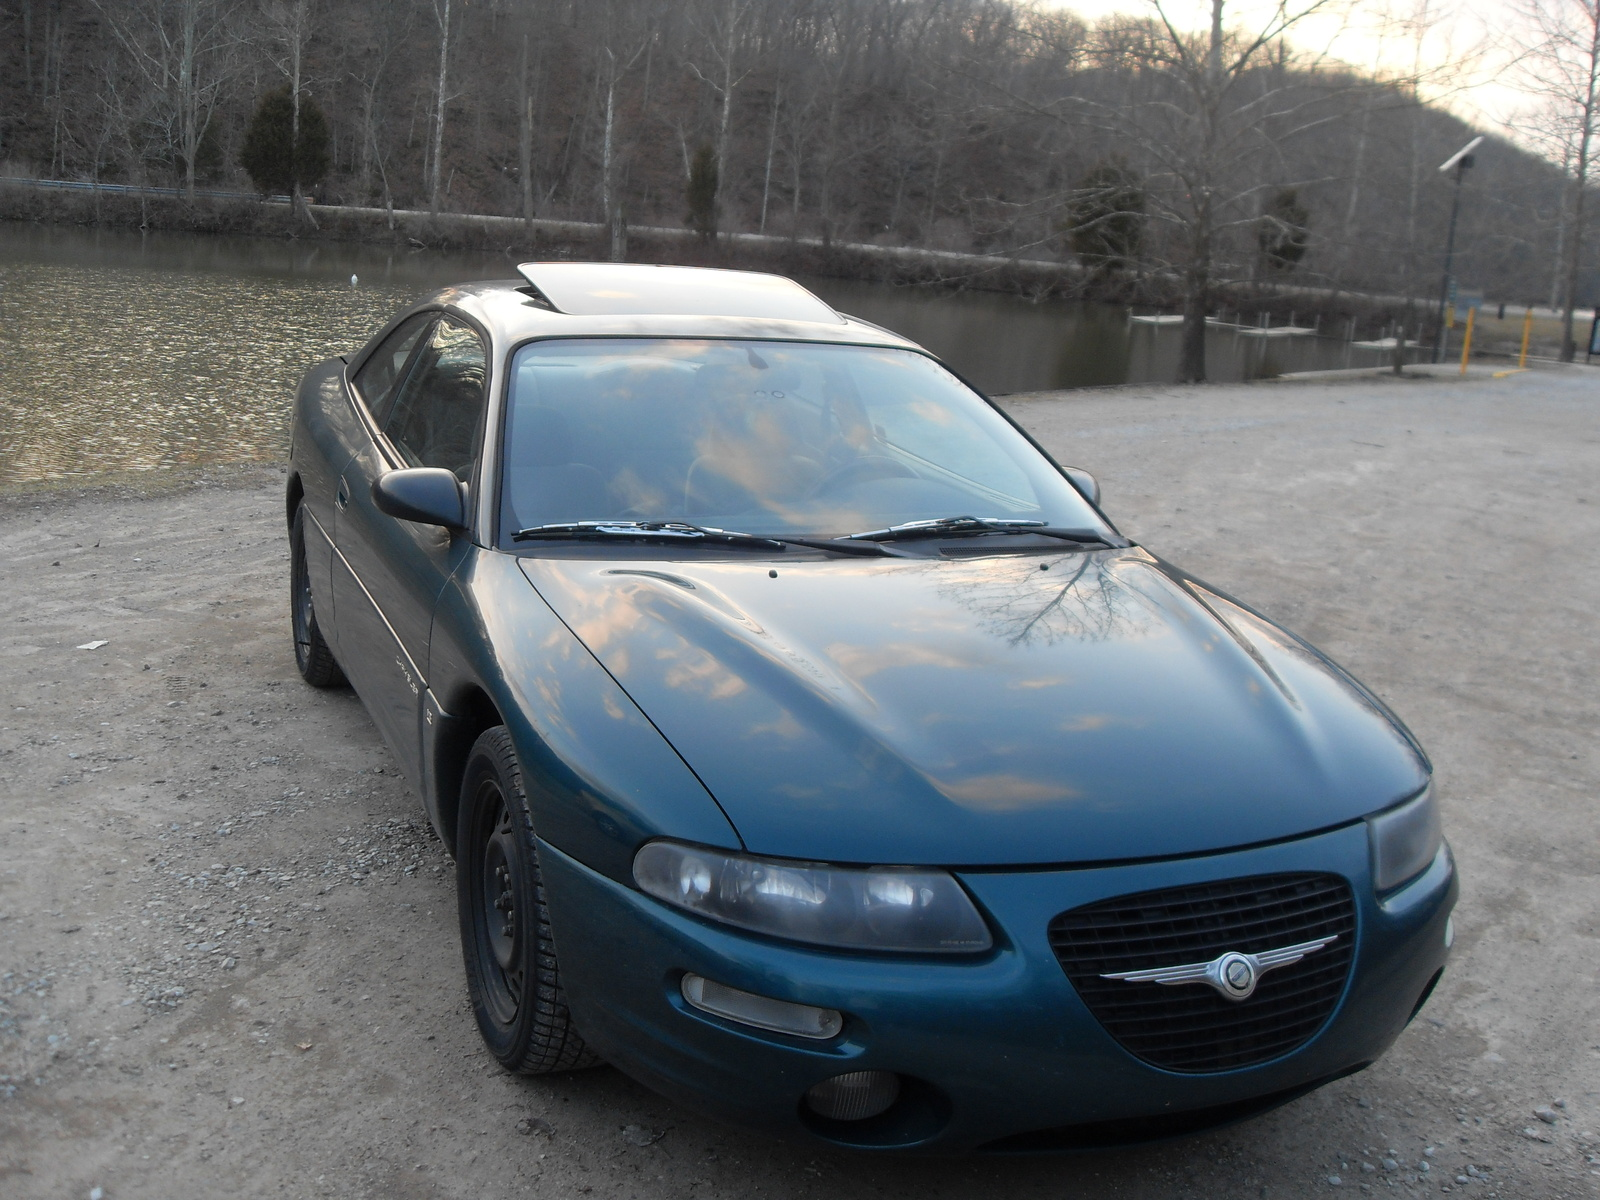 Picture of 1997 Chrysler Sebring 2 Dr LX Coupe